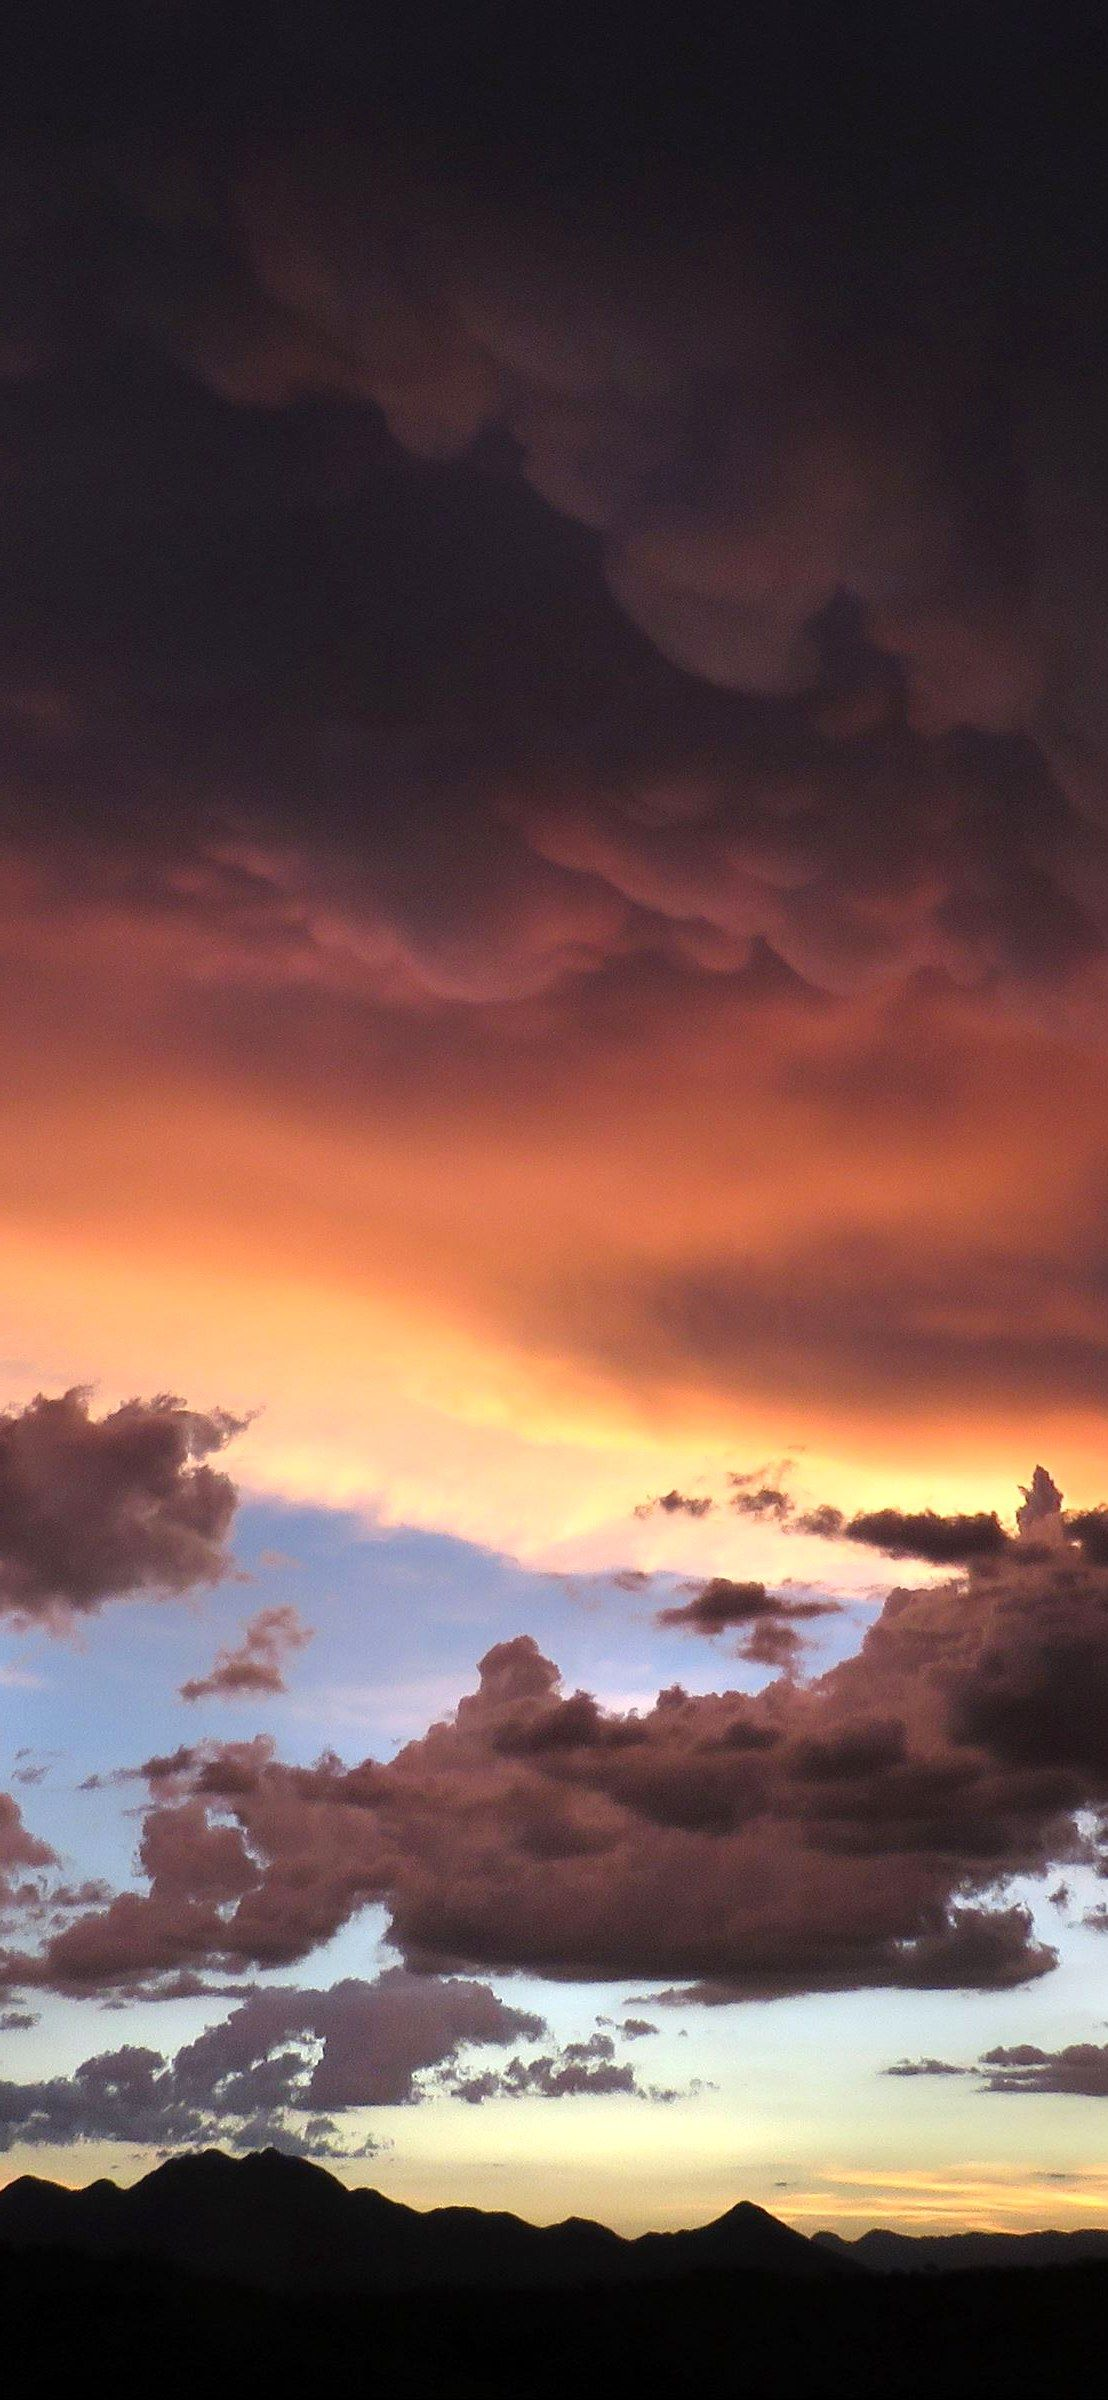 Iphone X Wallpaper Mountains clouds sunset Hd in 2020